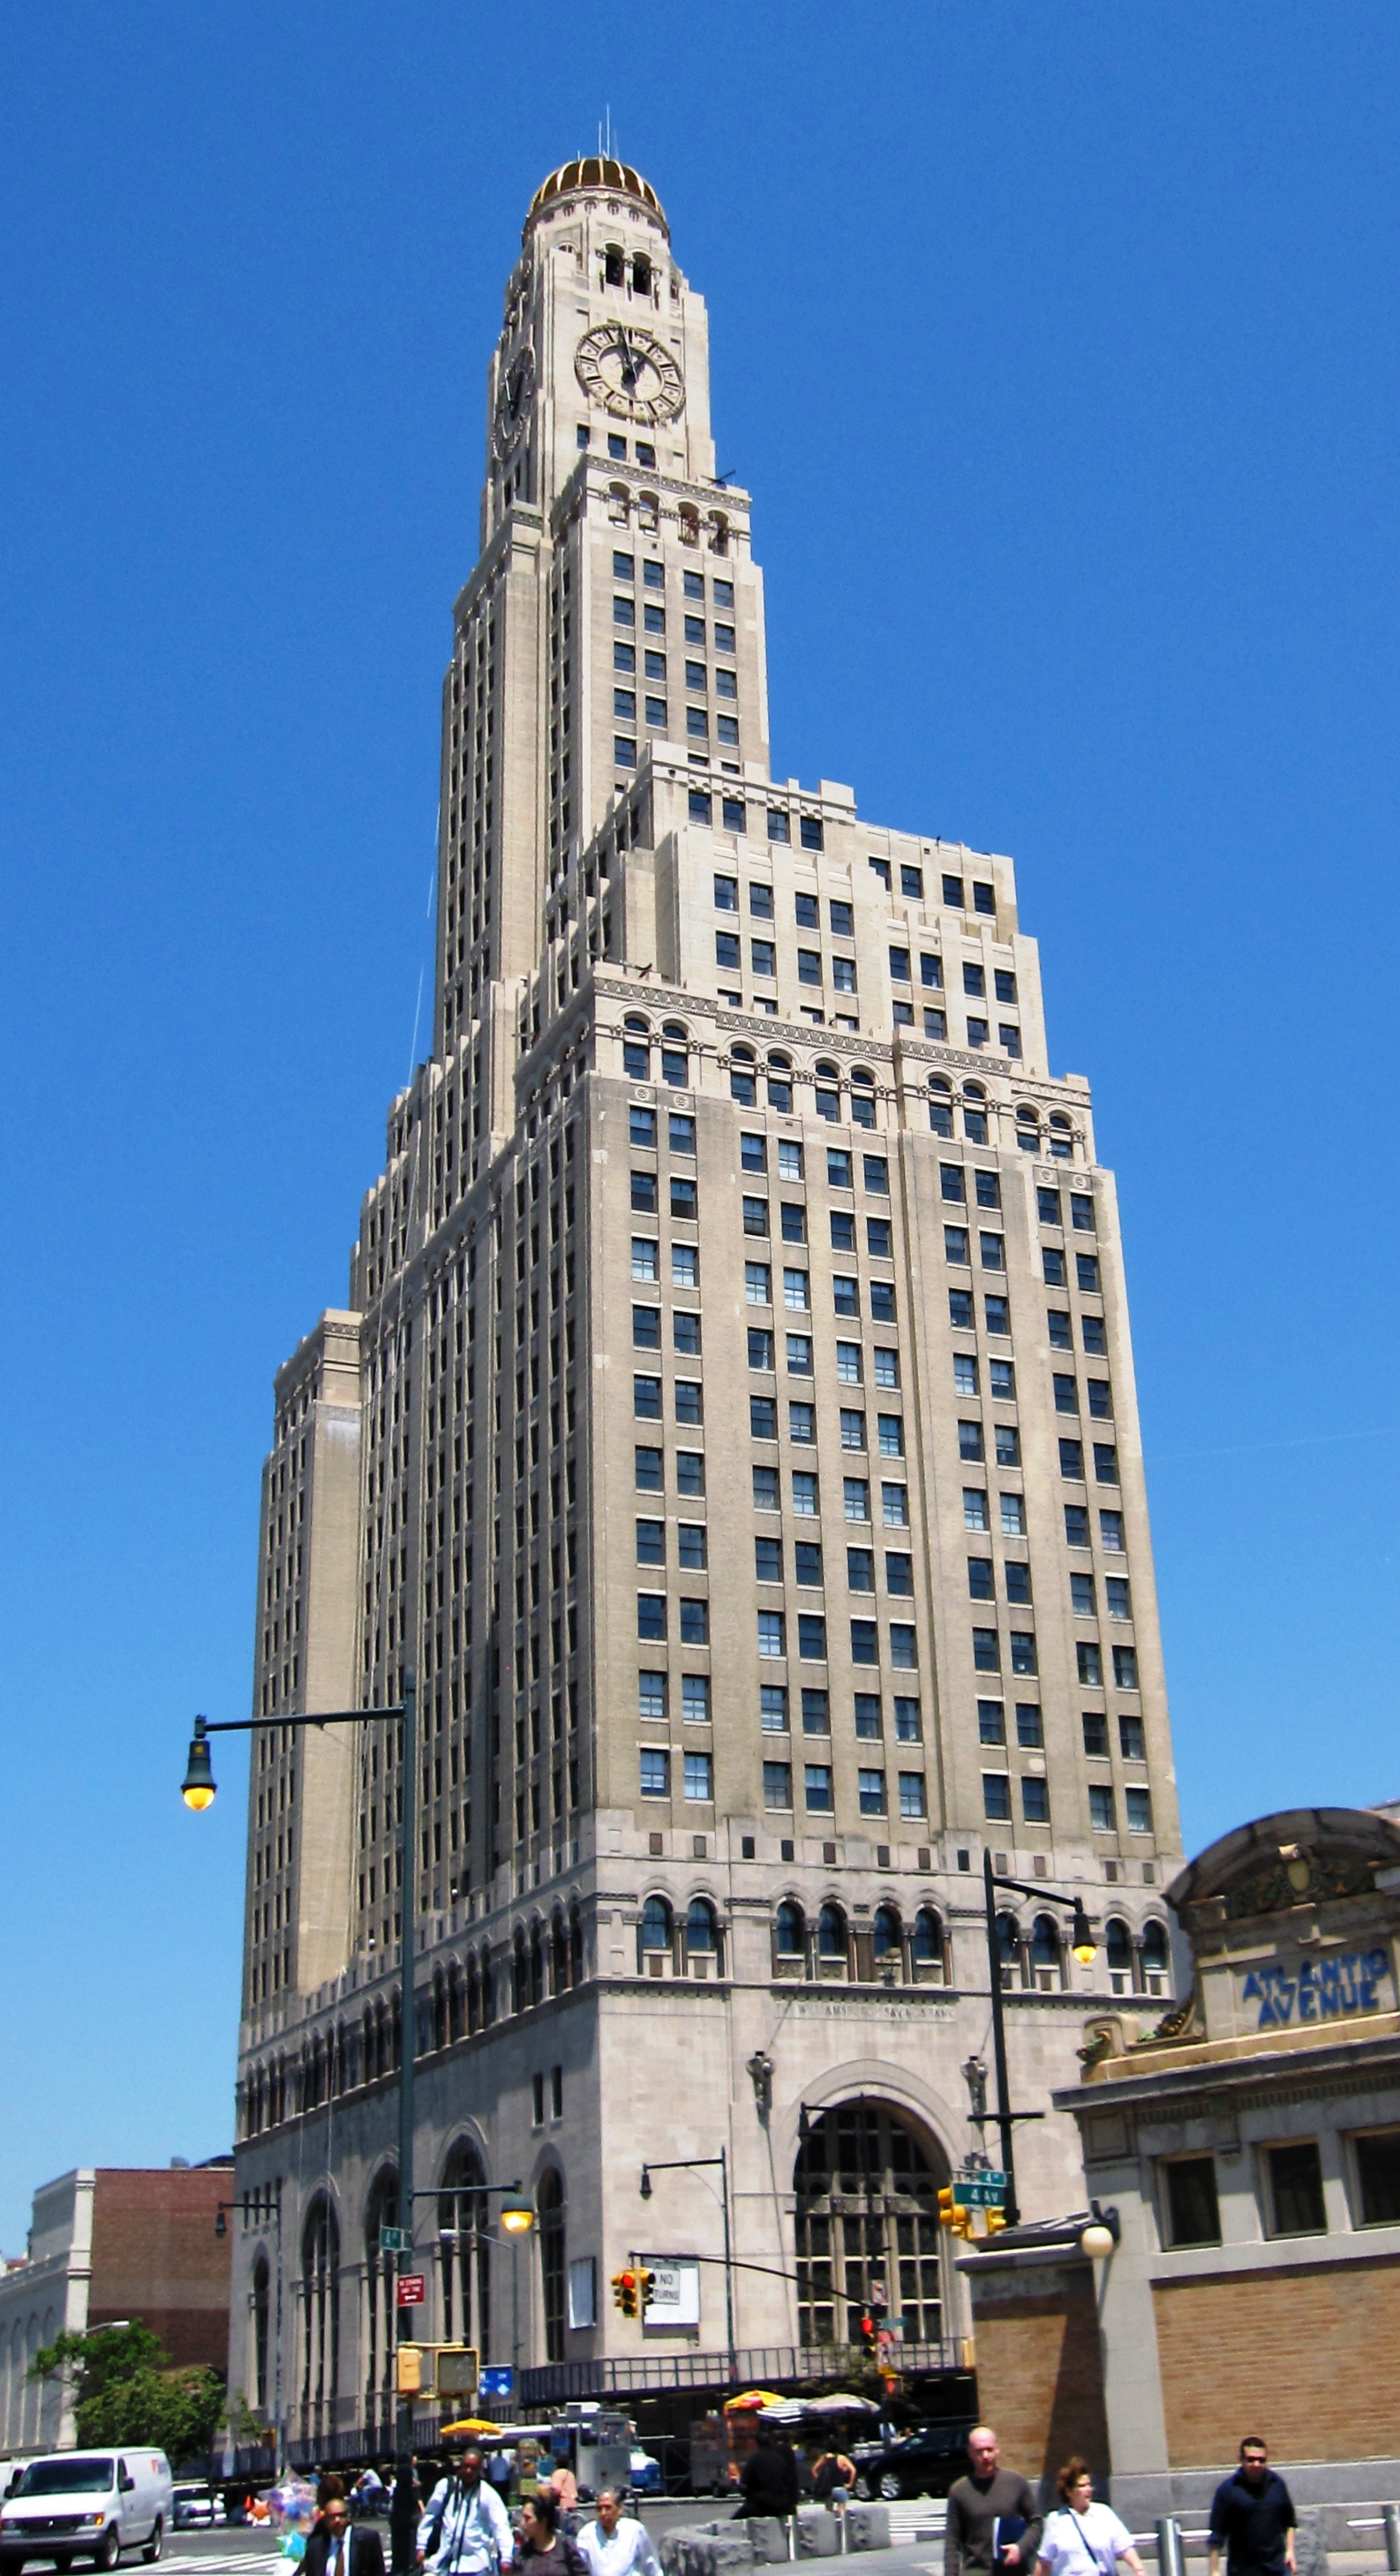 The former bank building is best-known for its clock tower and copper dome.